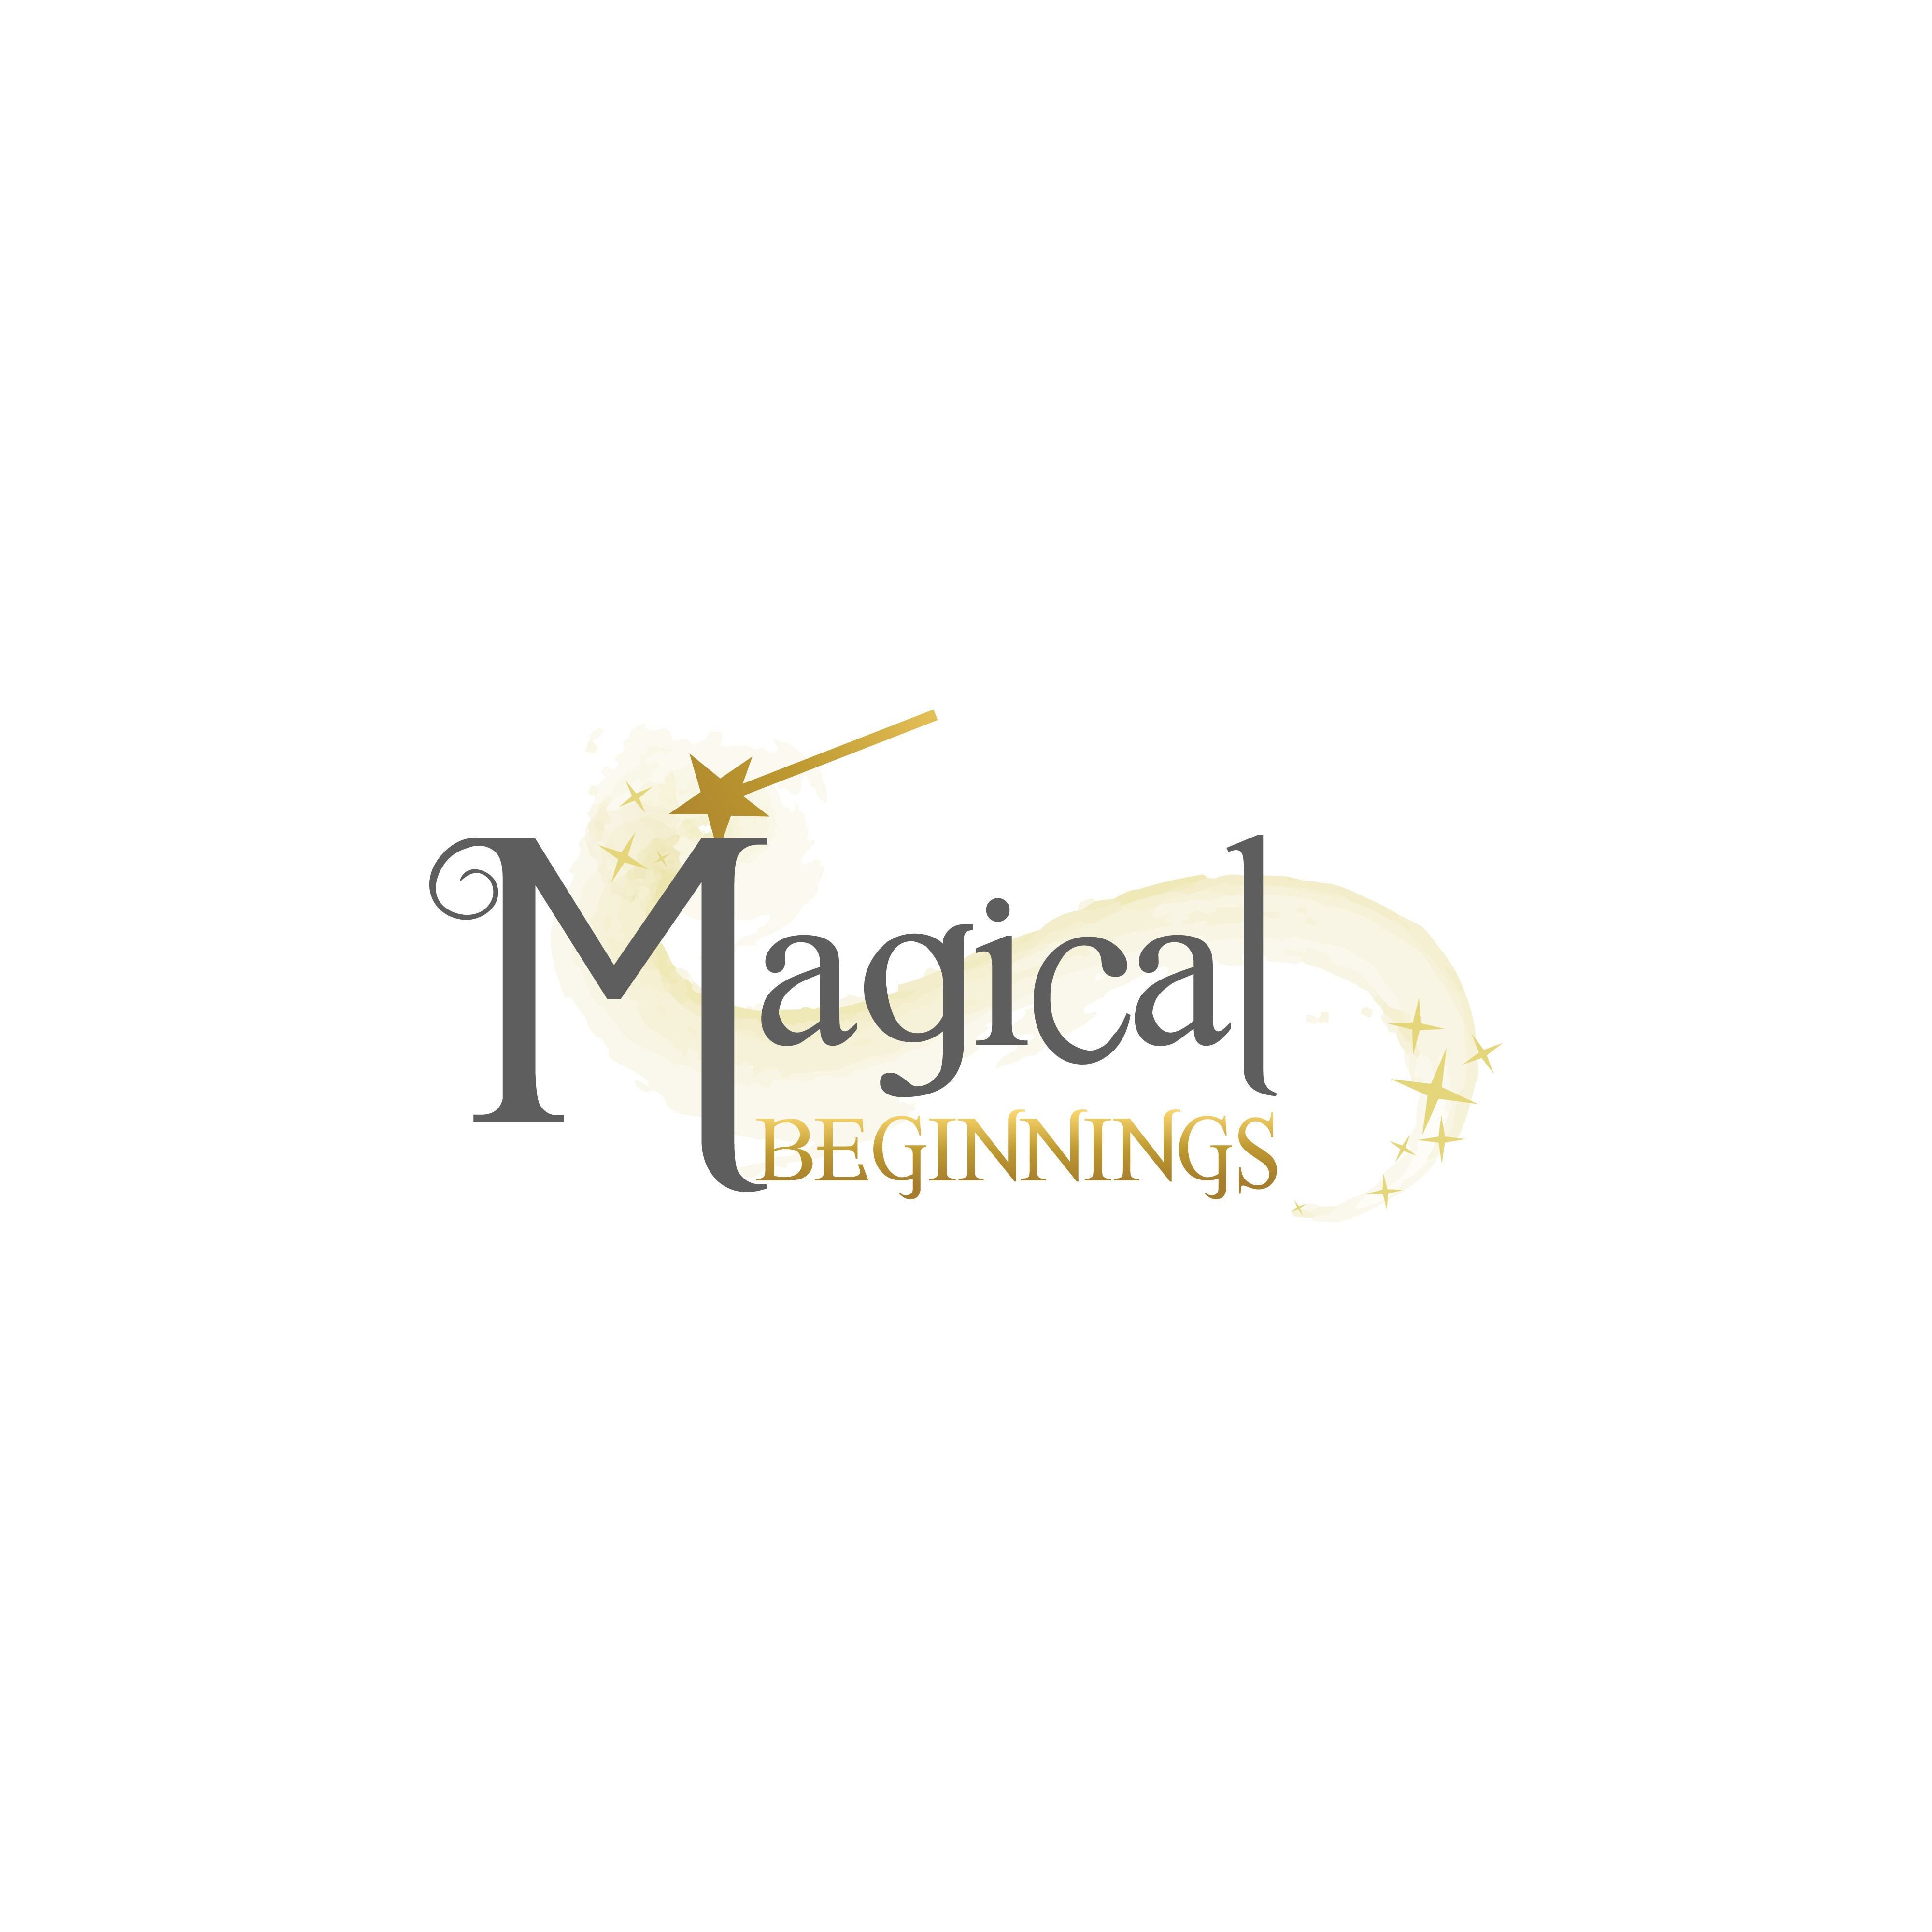 Magical Logo Design to Launch Brand